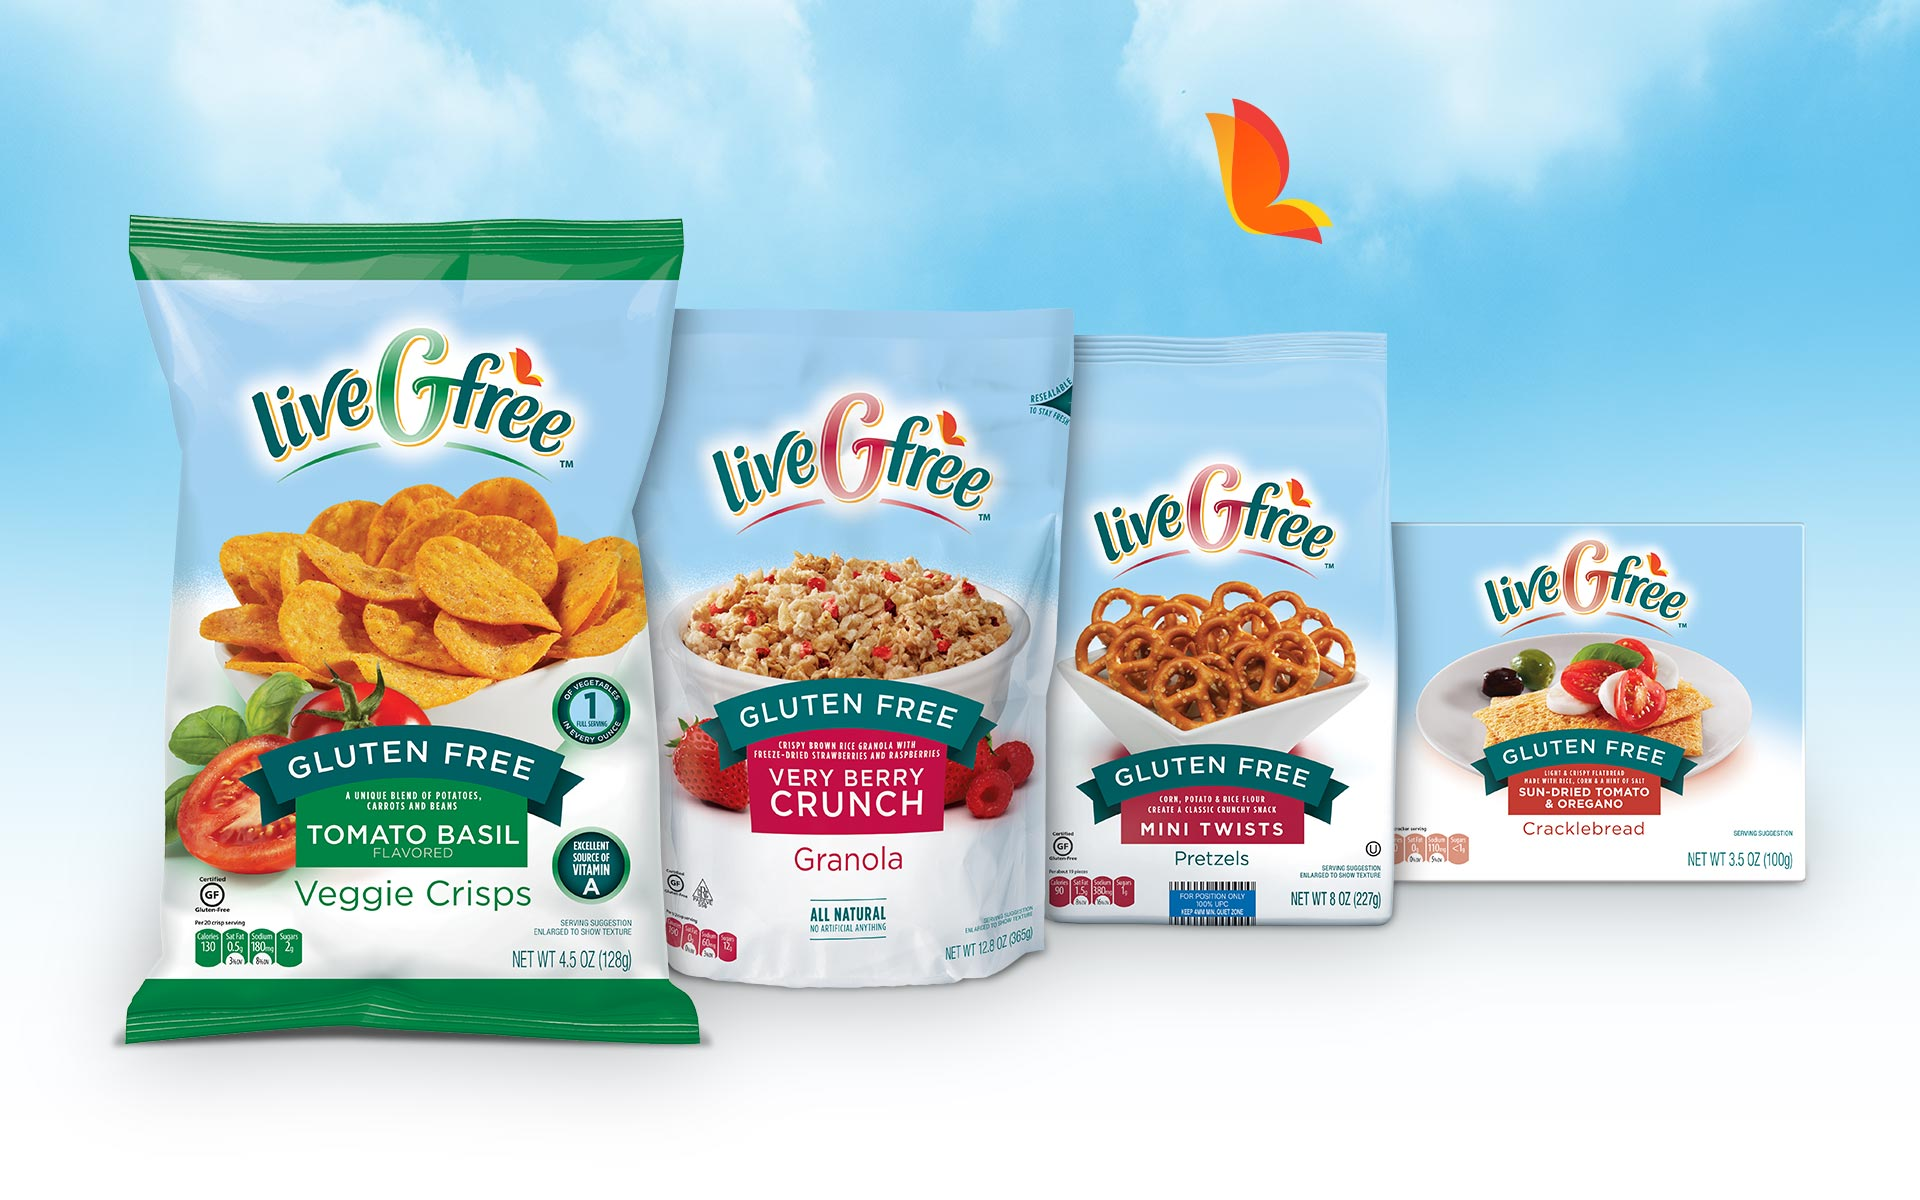 Aldi LiveGfree - Brand Packaging Design